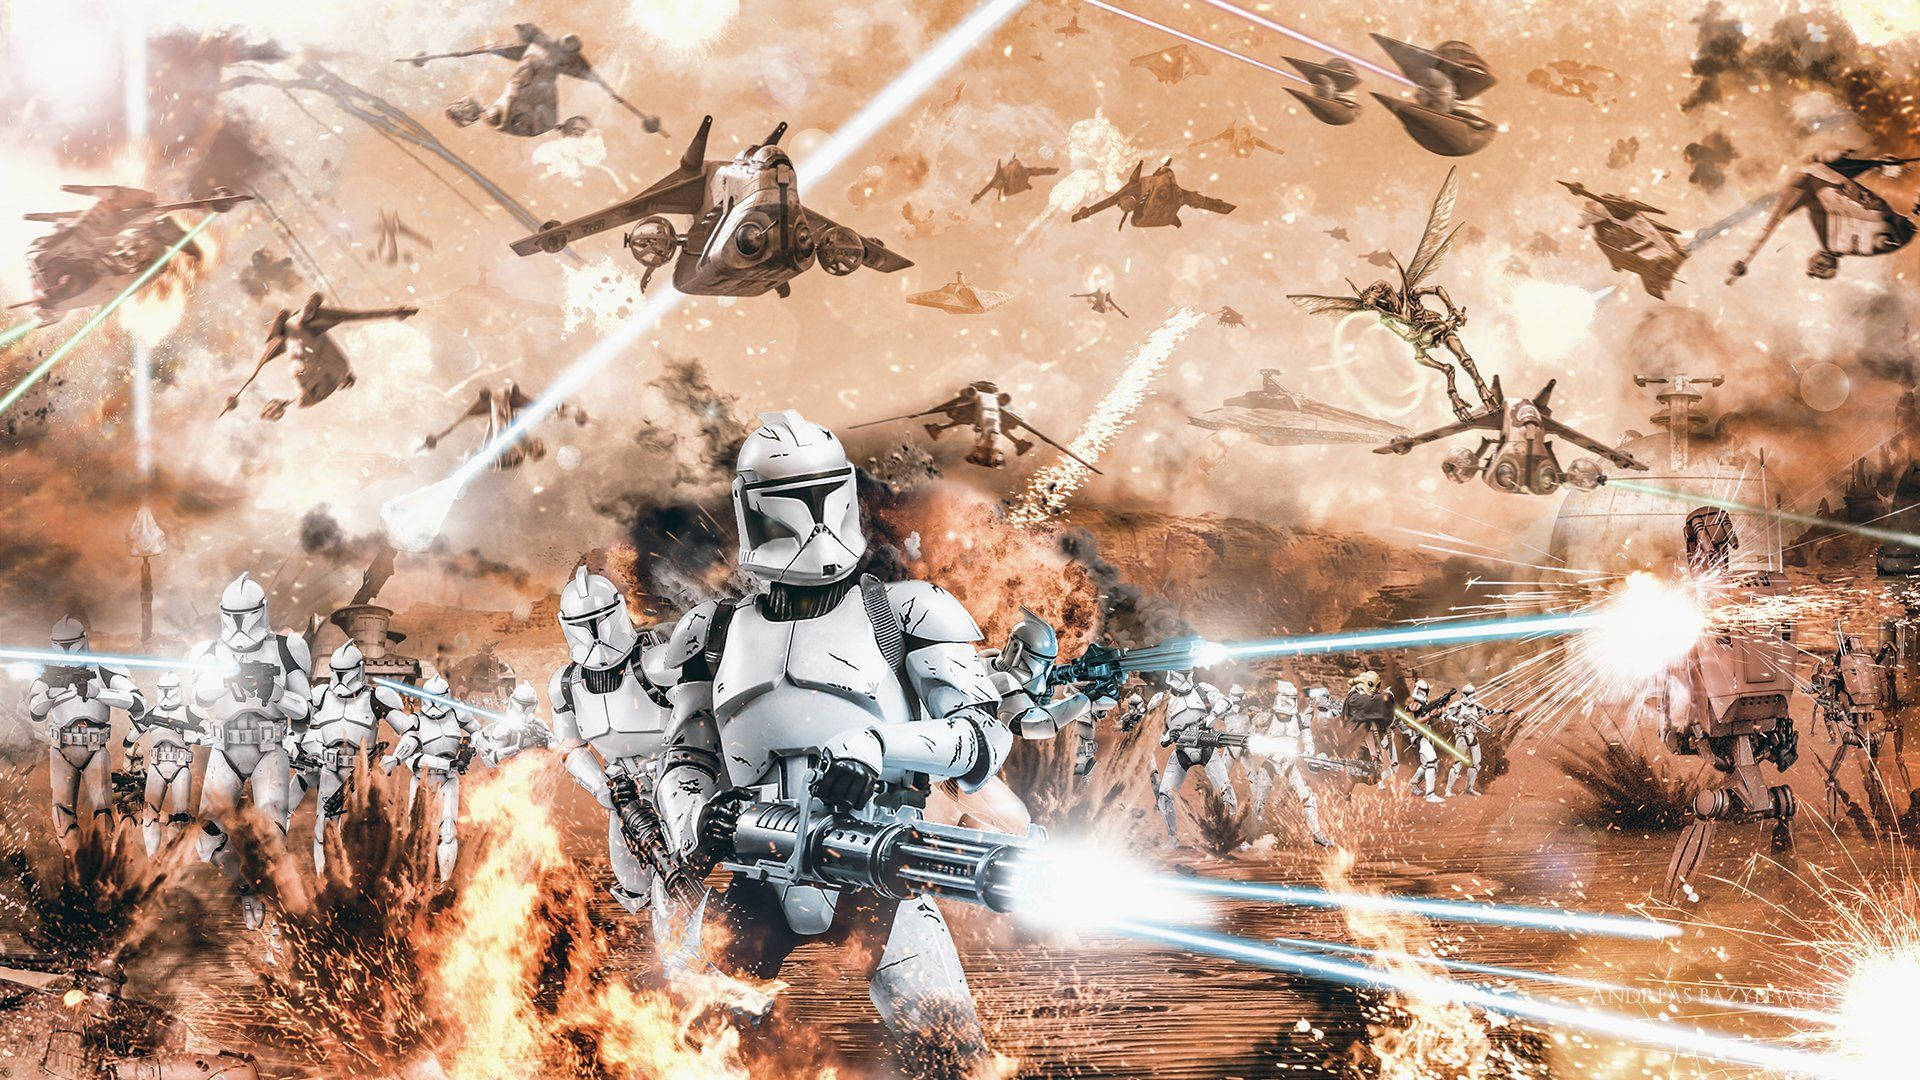 Star Wars Clone Troopers Wallpapers Top Free Star Wars Clone Troopers Backgrounds Wallpaperaccess